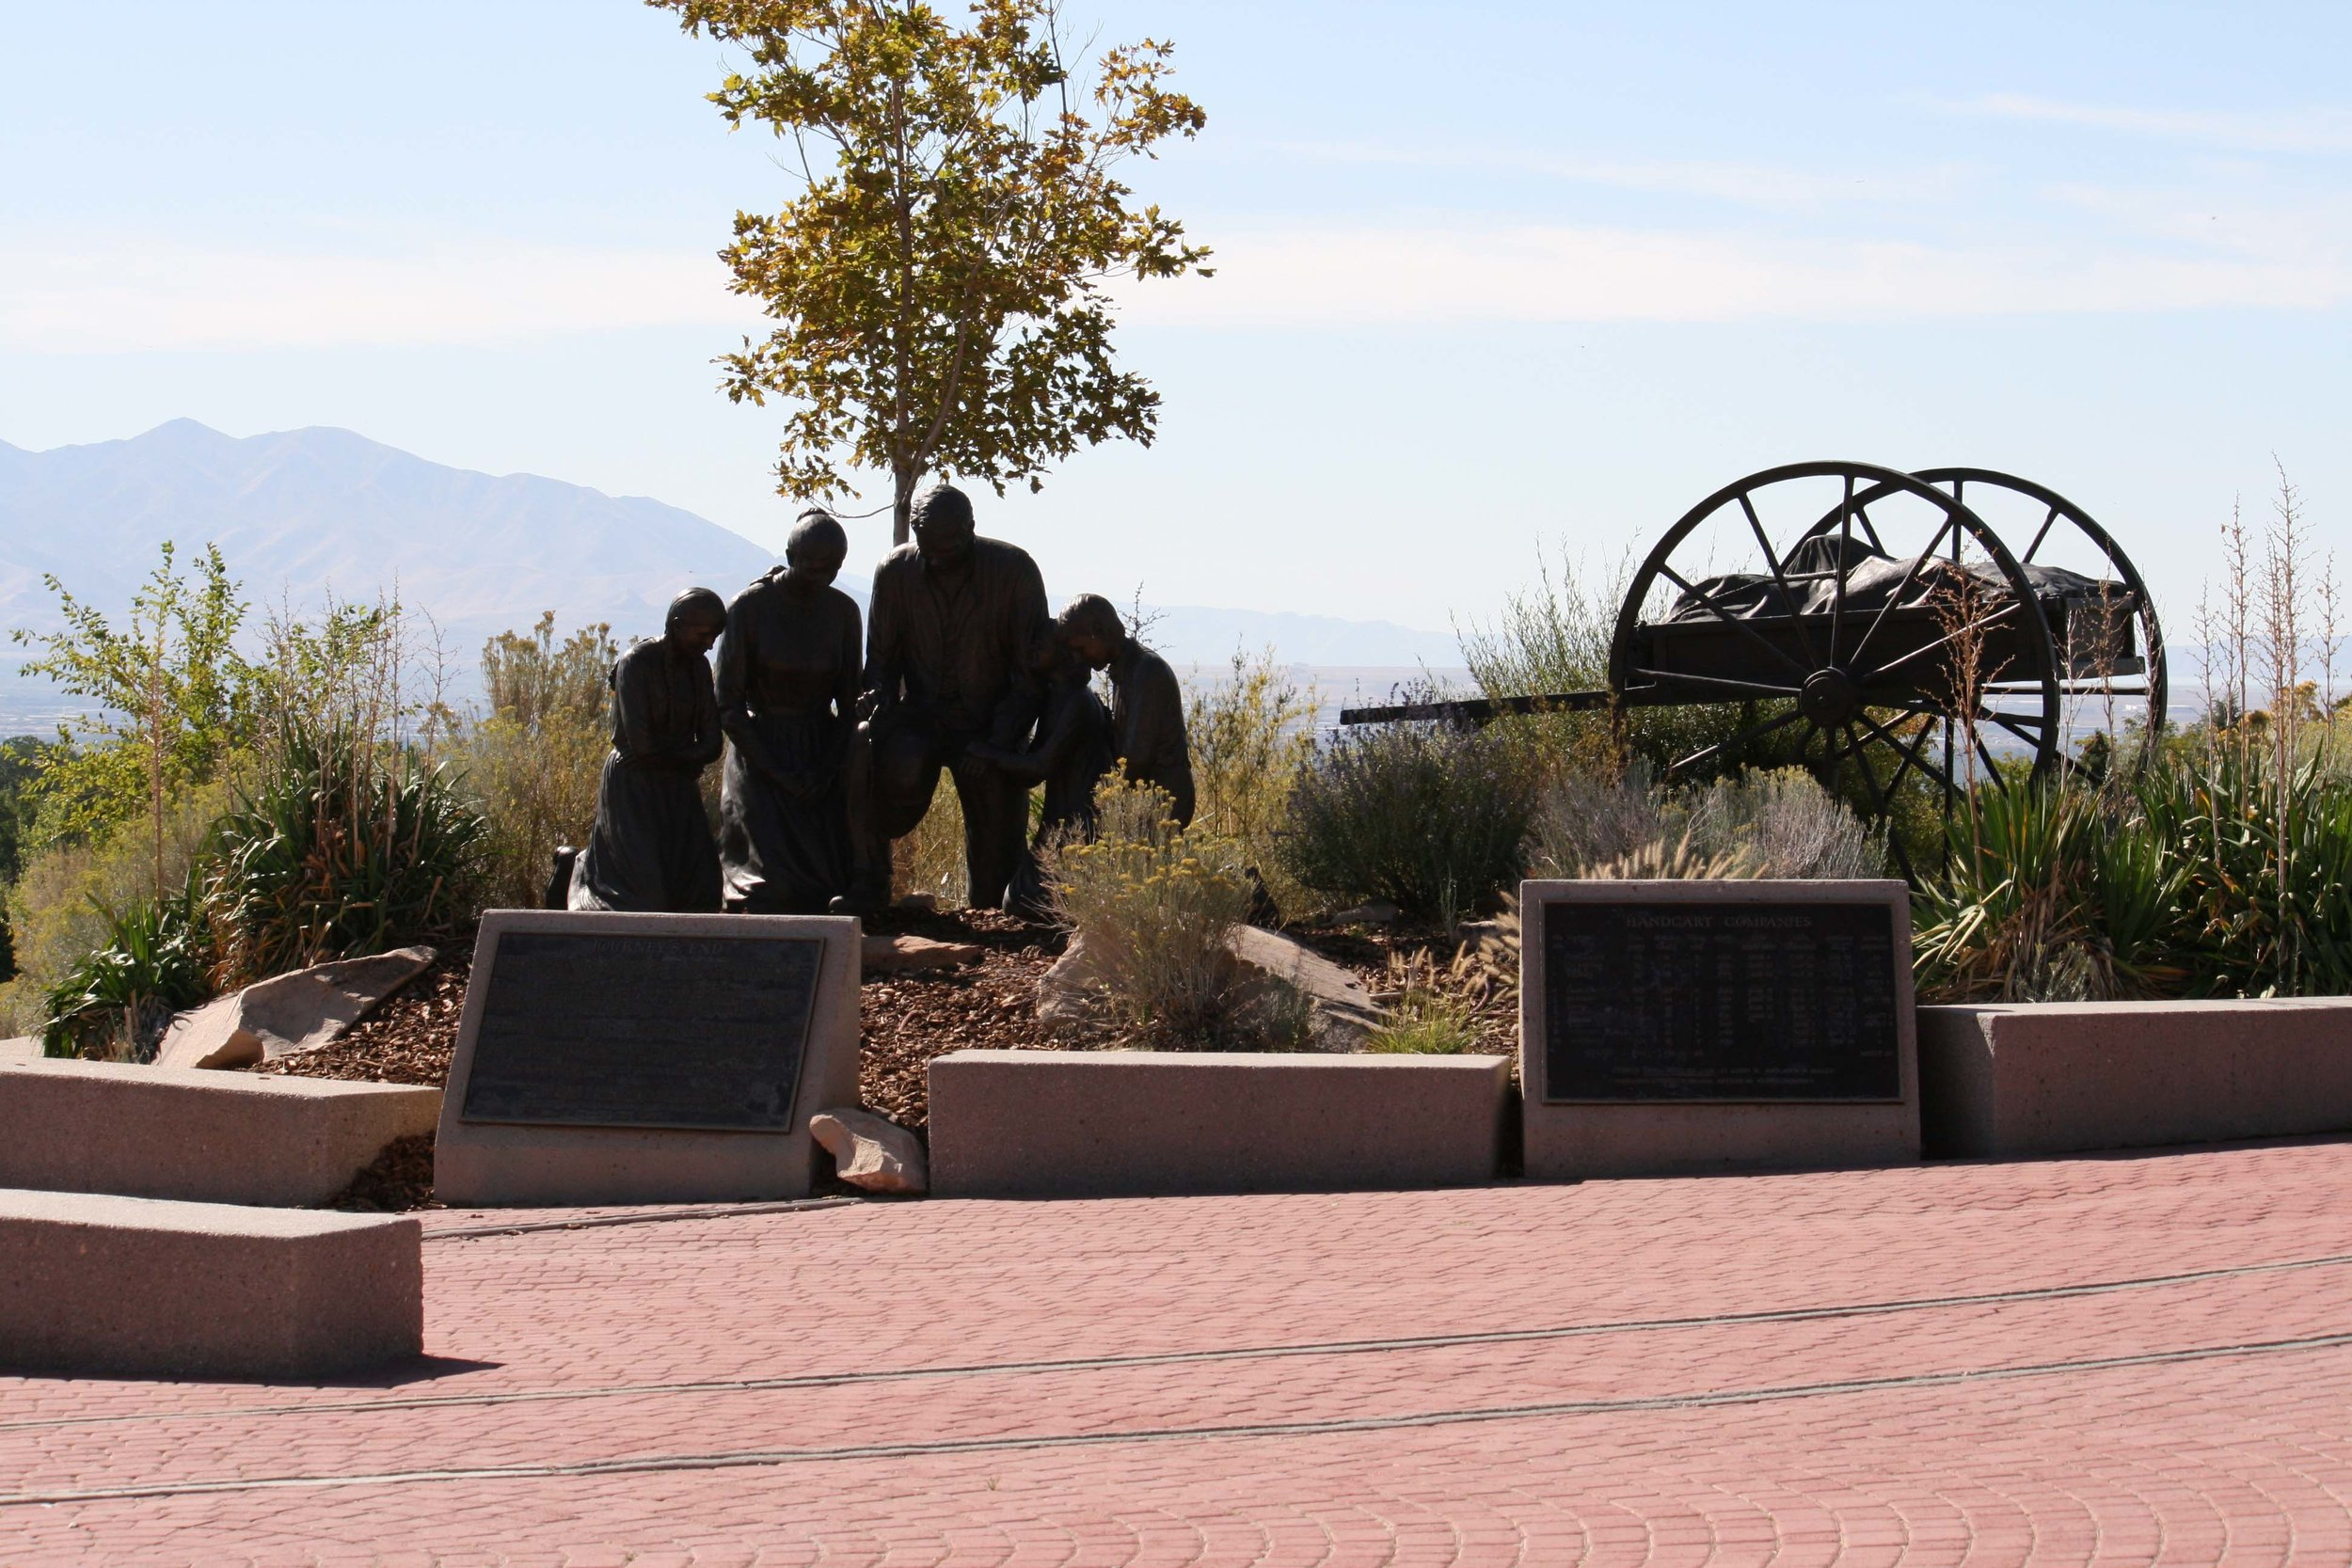 Journey's End Monument - This sculpture depicts a handcart pioneer family kneeling in prayer at the end of their journey. Located at the west end of the Park's pedestrian plaza, the monument was commissioned and donated by L.D. and Mary Bowerman, and sculpted by Stan Watts.